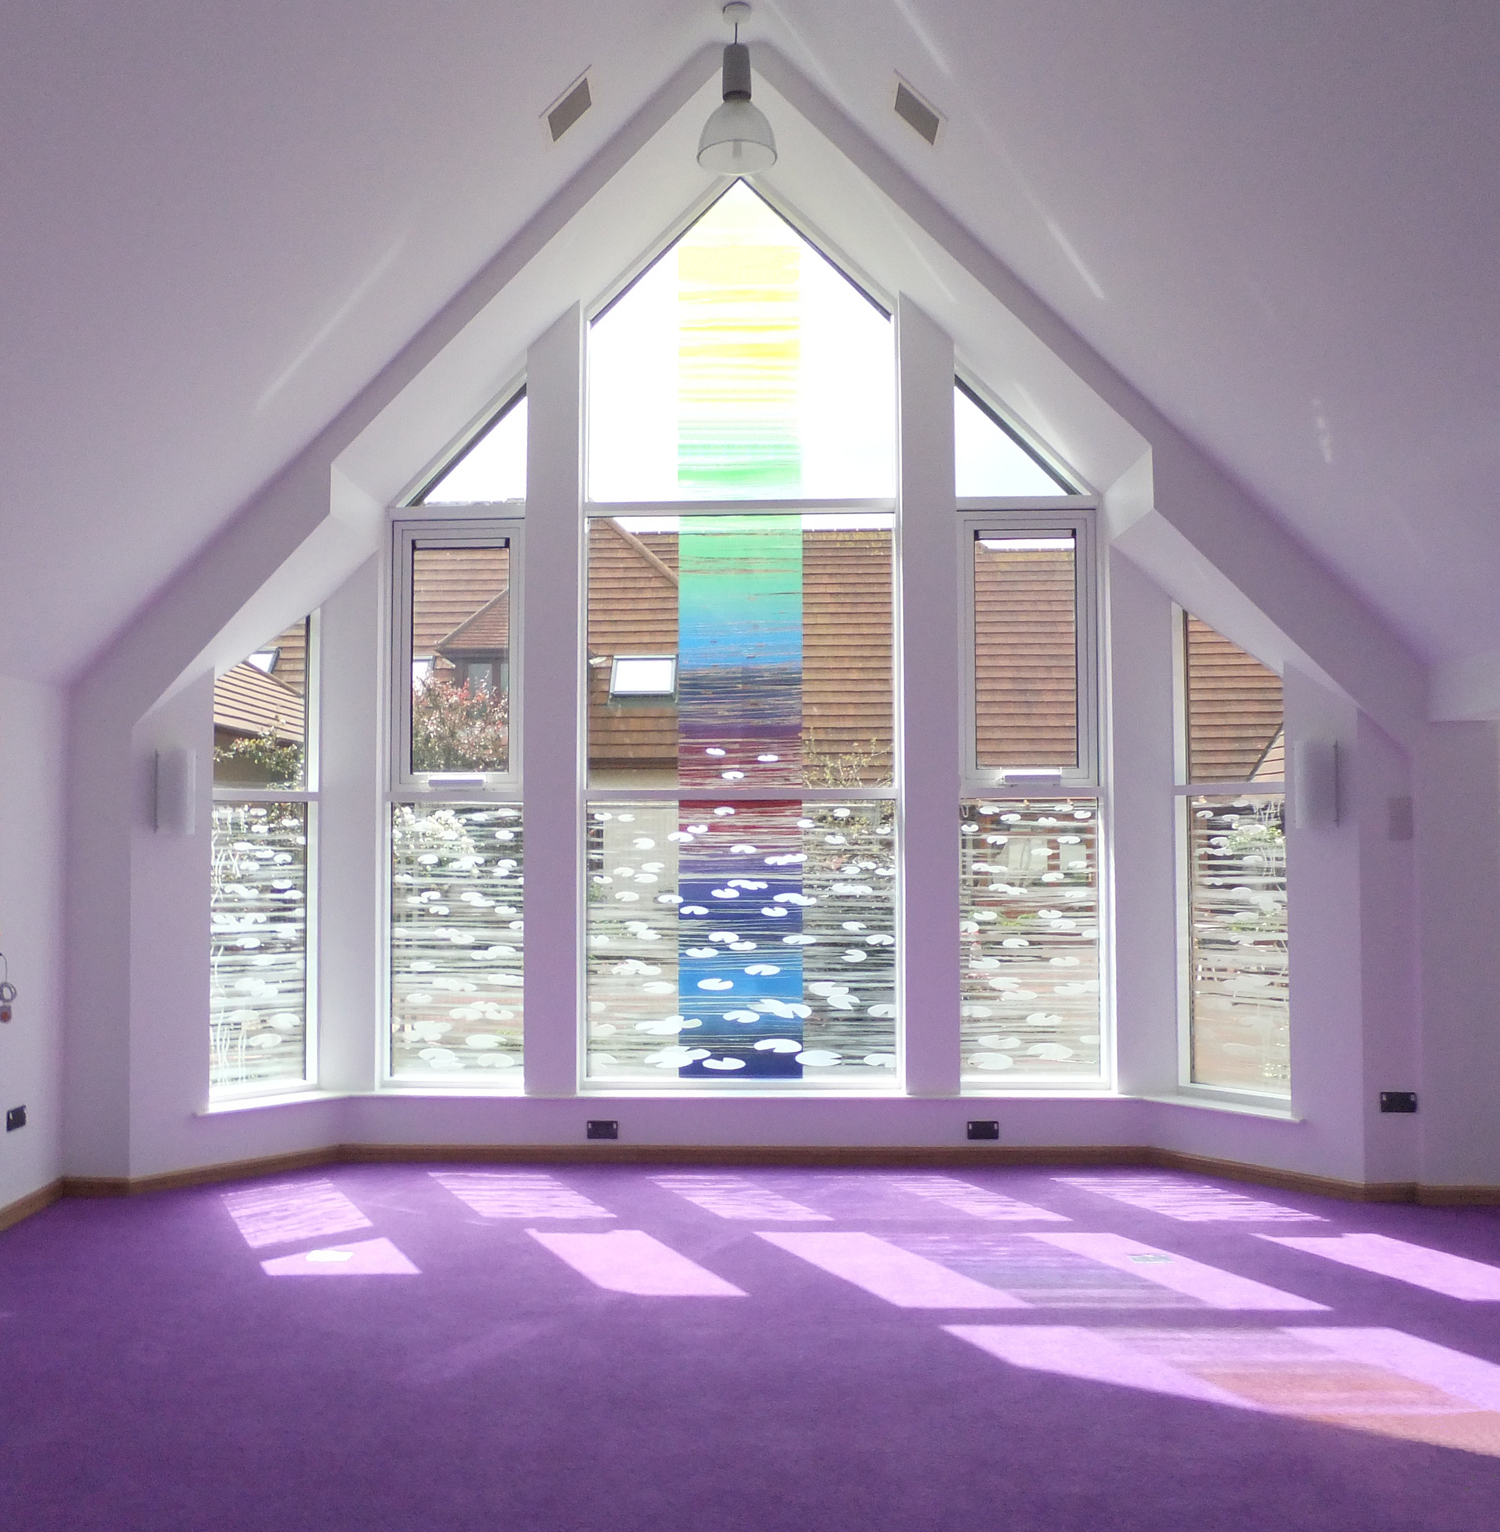 Glass for Scared Space at Martlets Hospice, Hove.